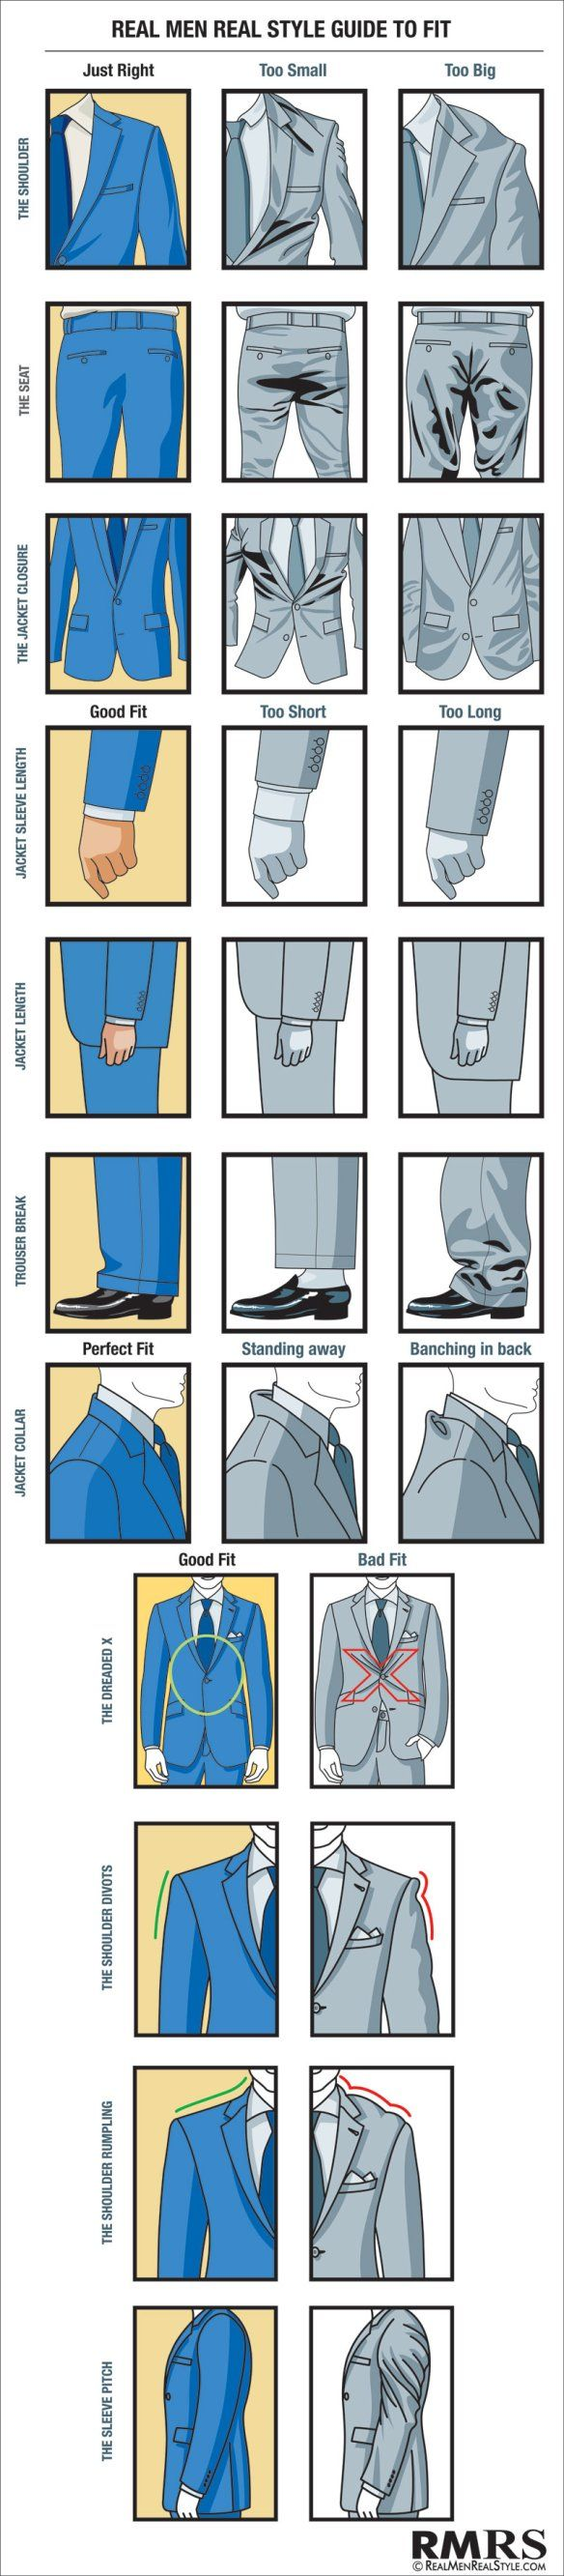 simpler man - Page 2 of 38 - A guide to help the average man... look less average